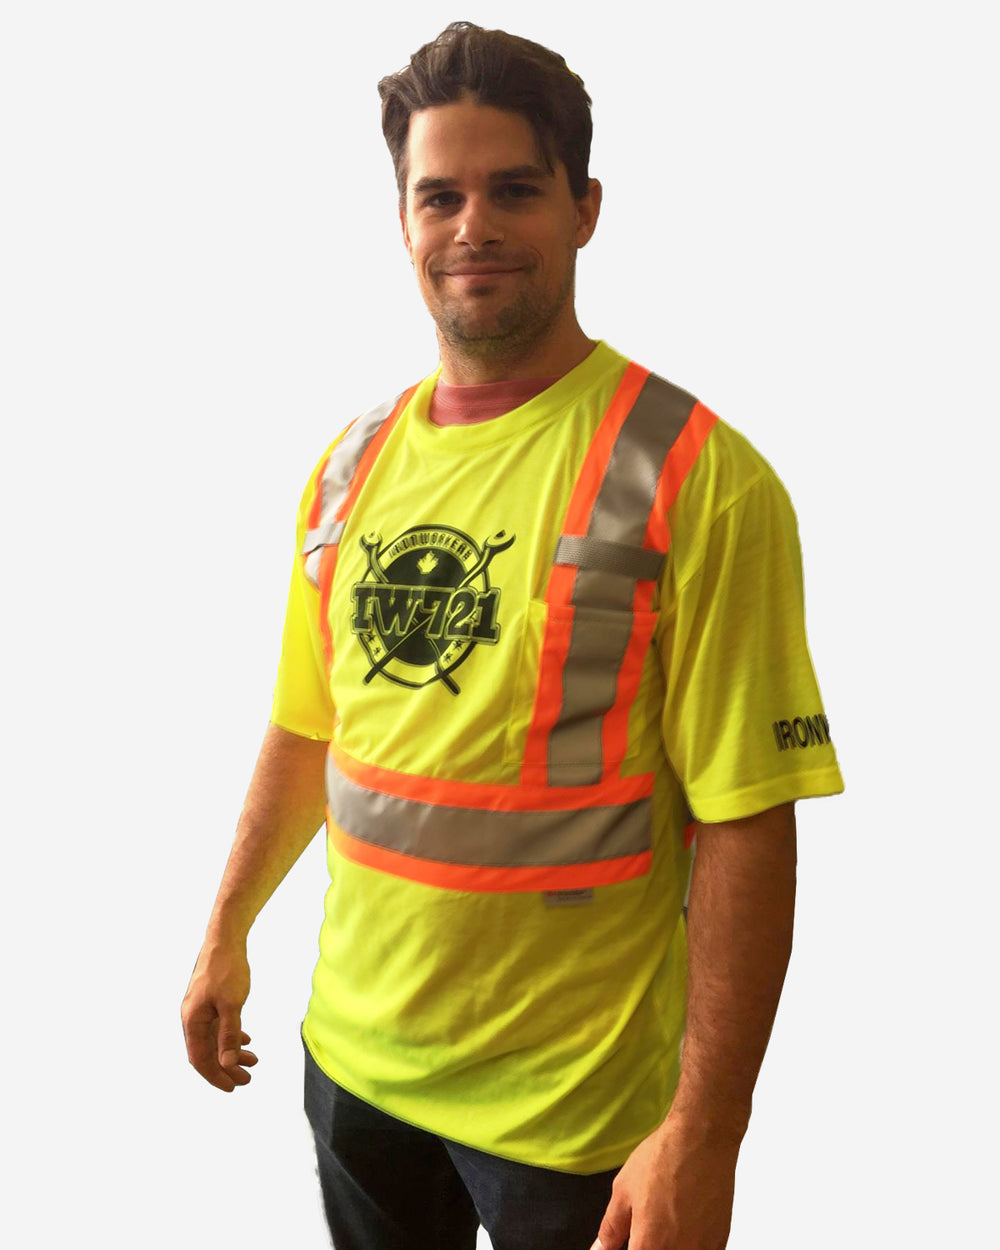 Short Sleeve Safety Tee- Lime Only